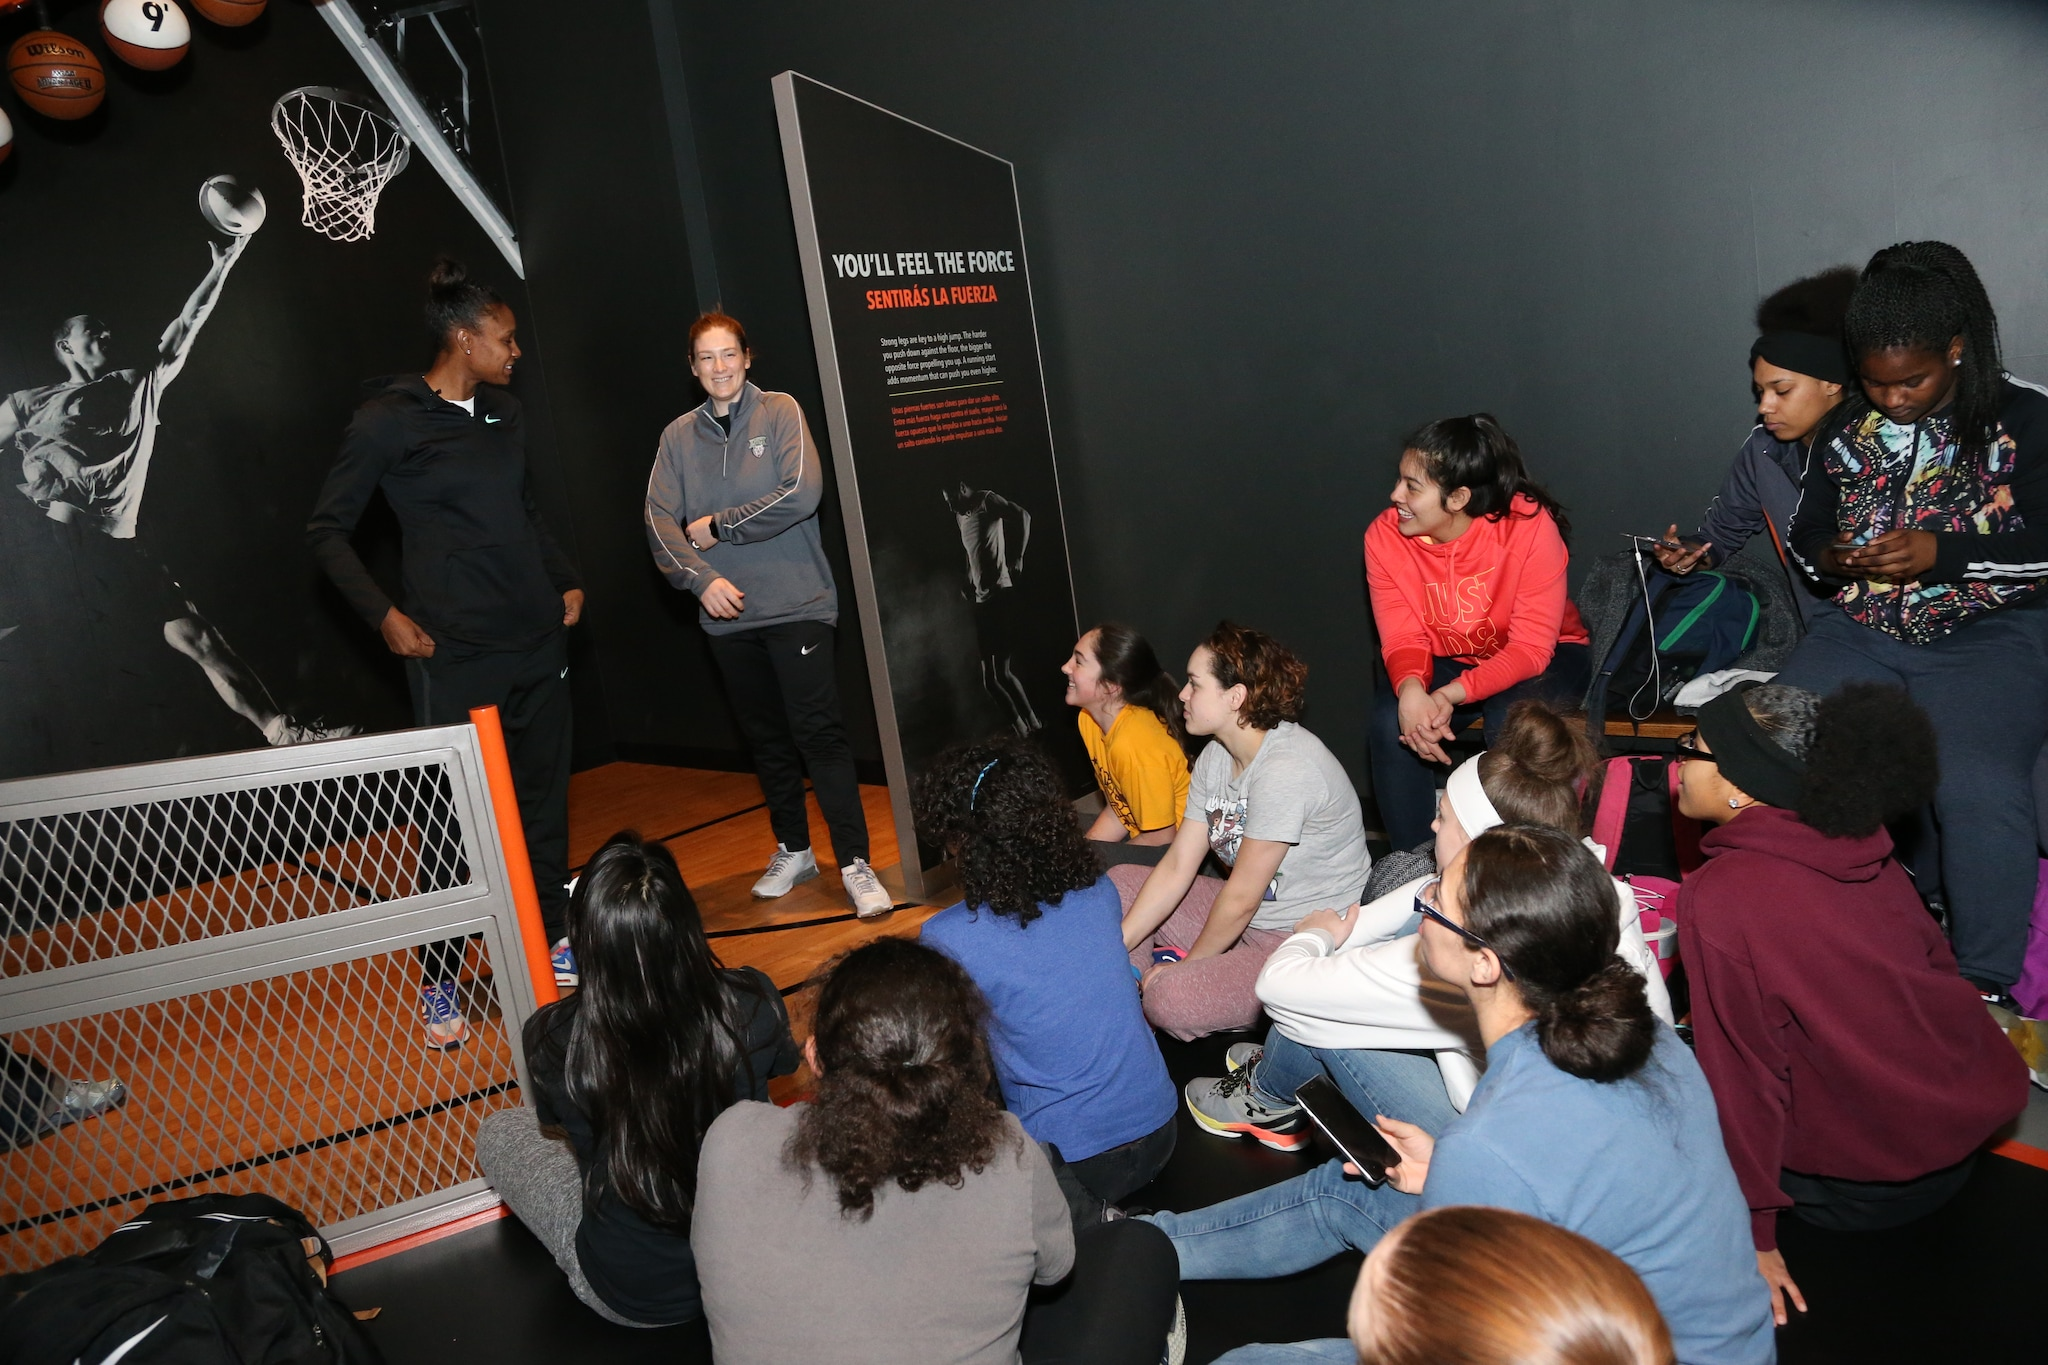 Minnesota Lynx visit Sportsology at the Science Museum of Minnesota